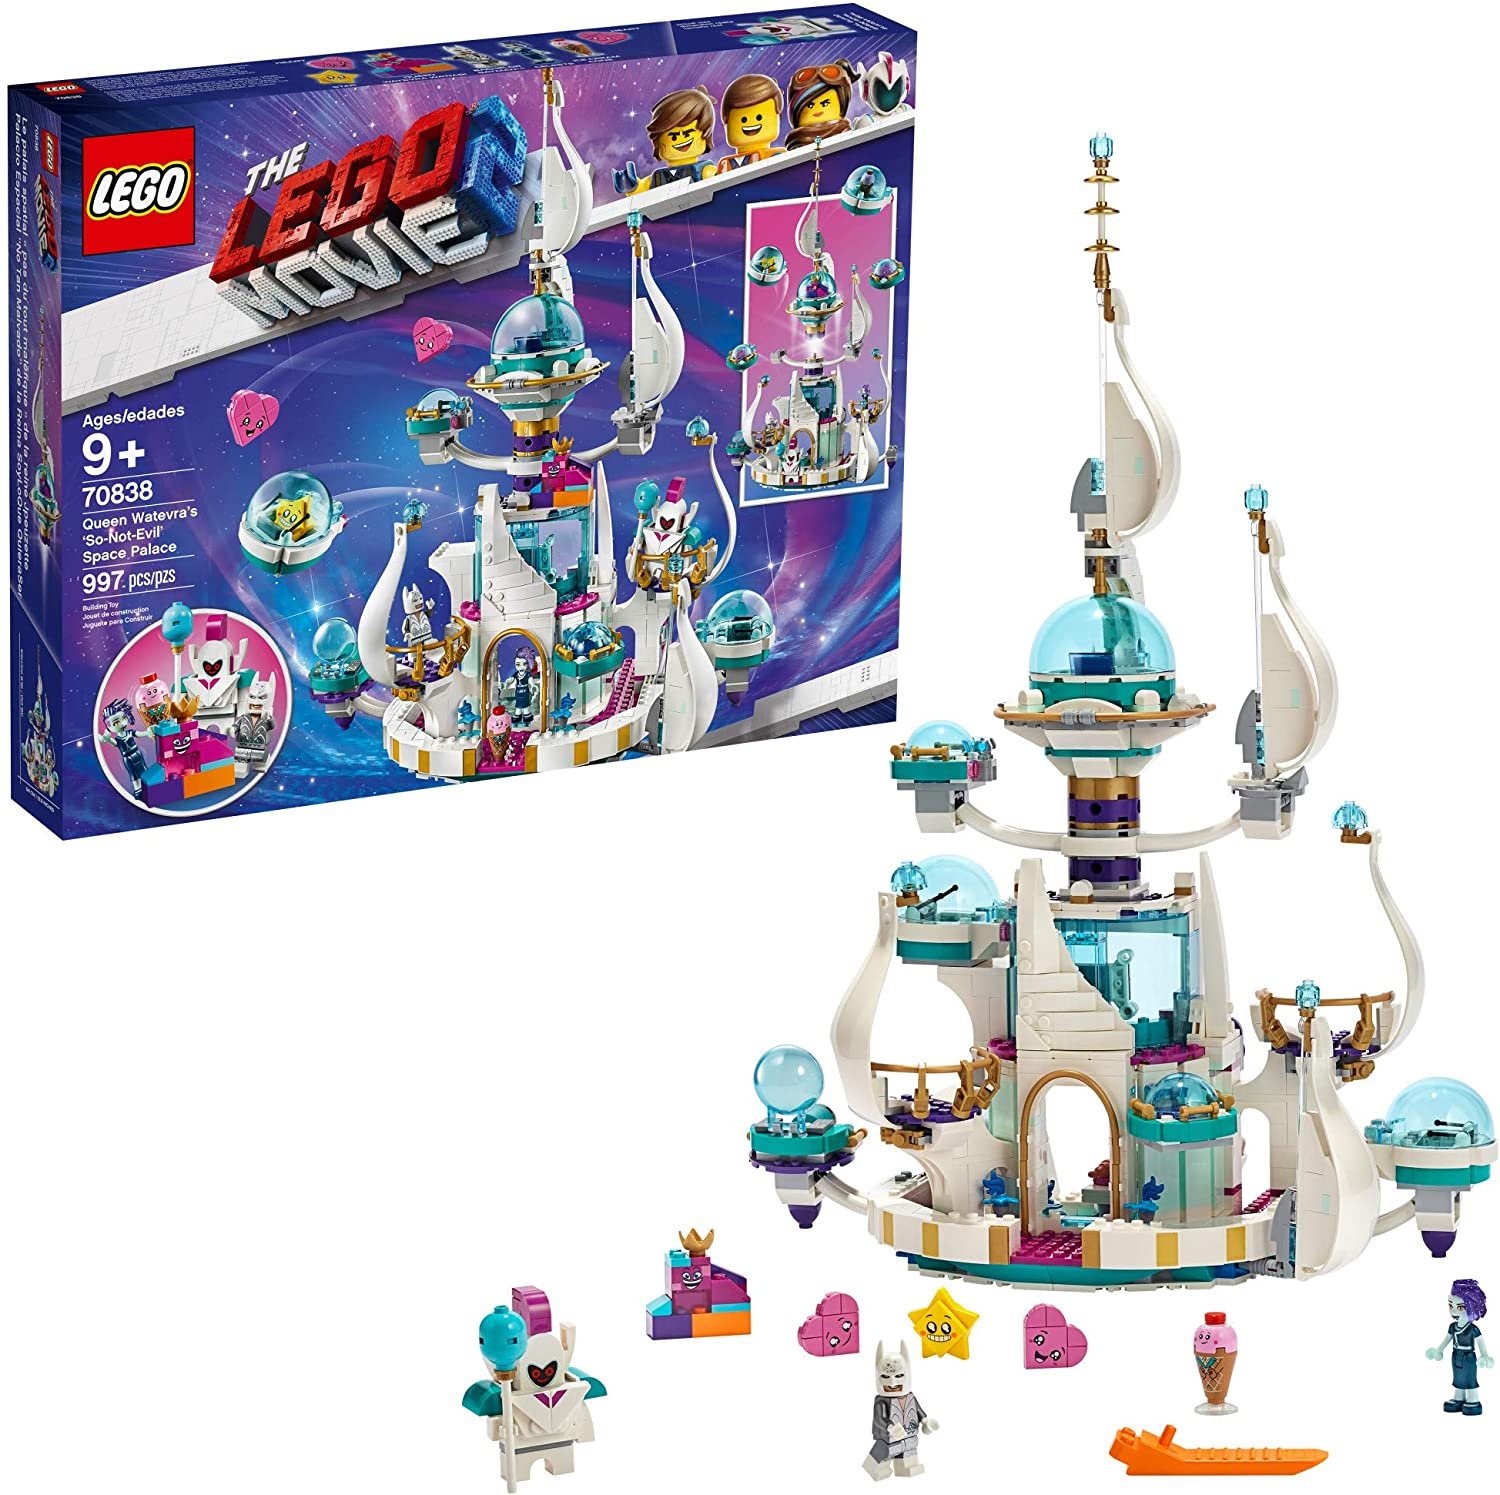 Amazon Com Lego The Lego Movie 2 Queen Watevra S So Not Evil Space Palace 70838 Building Kit 995 Pieces Toys Games